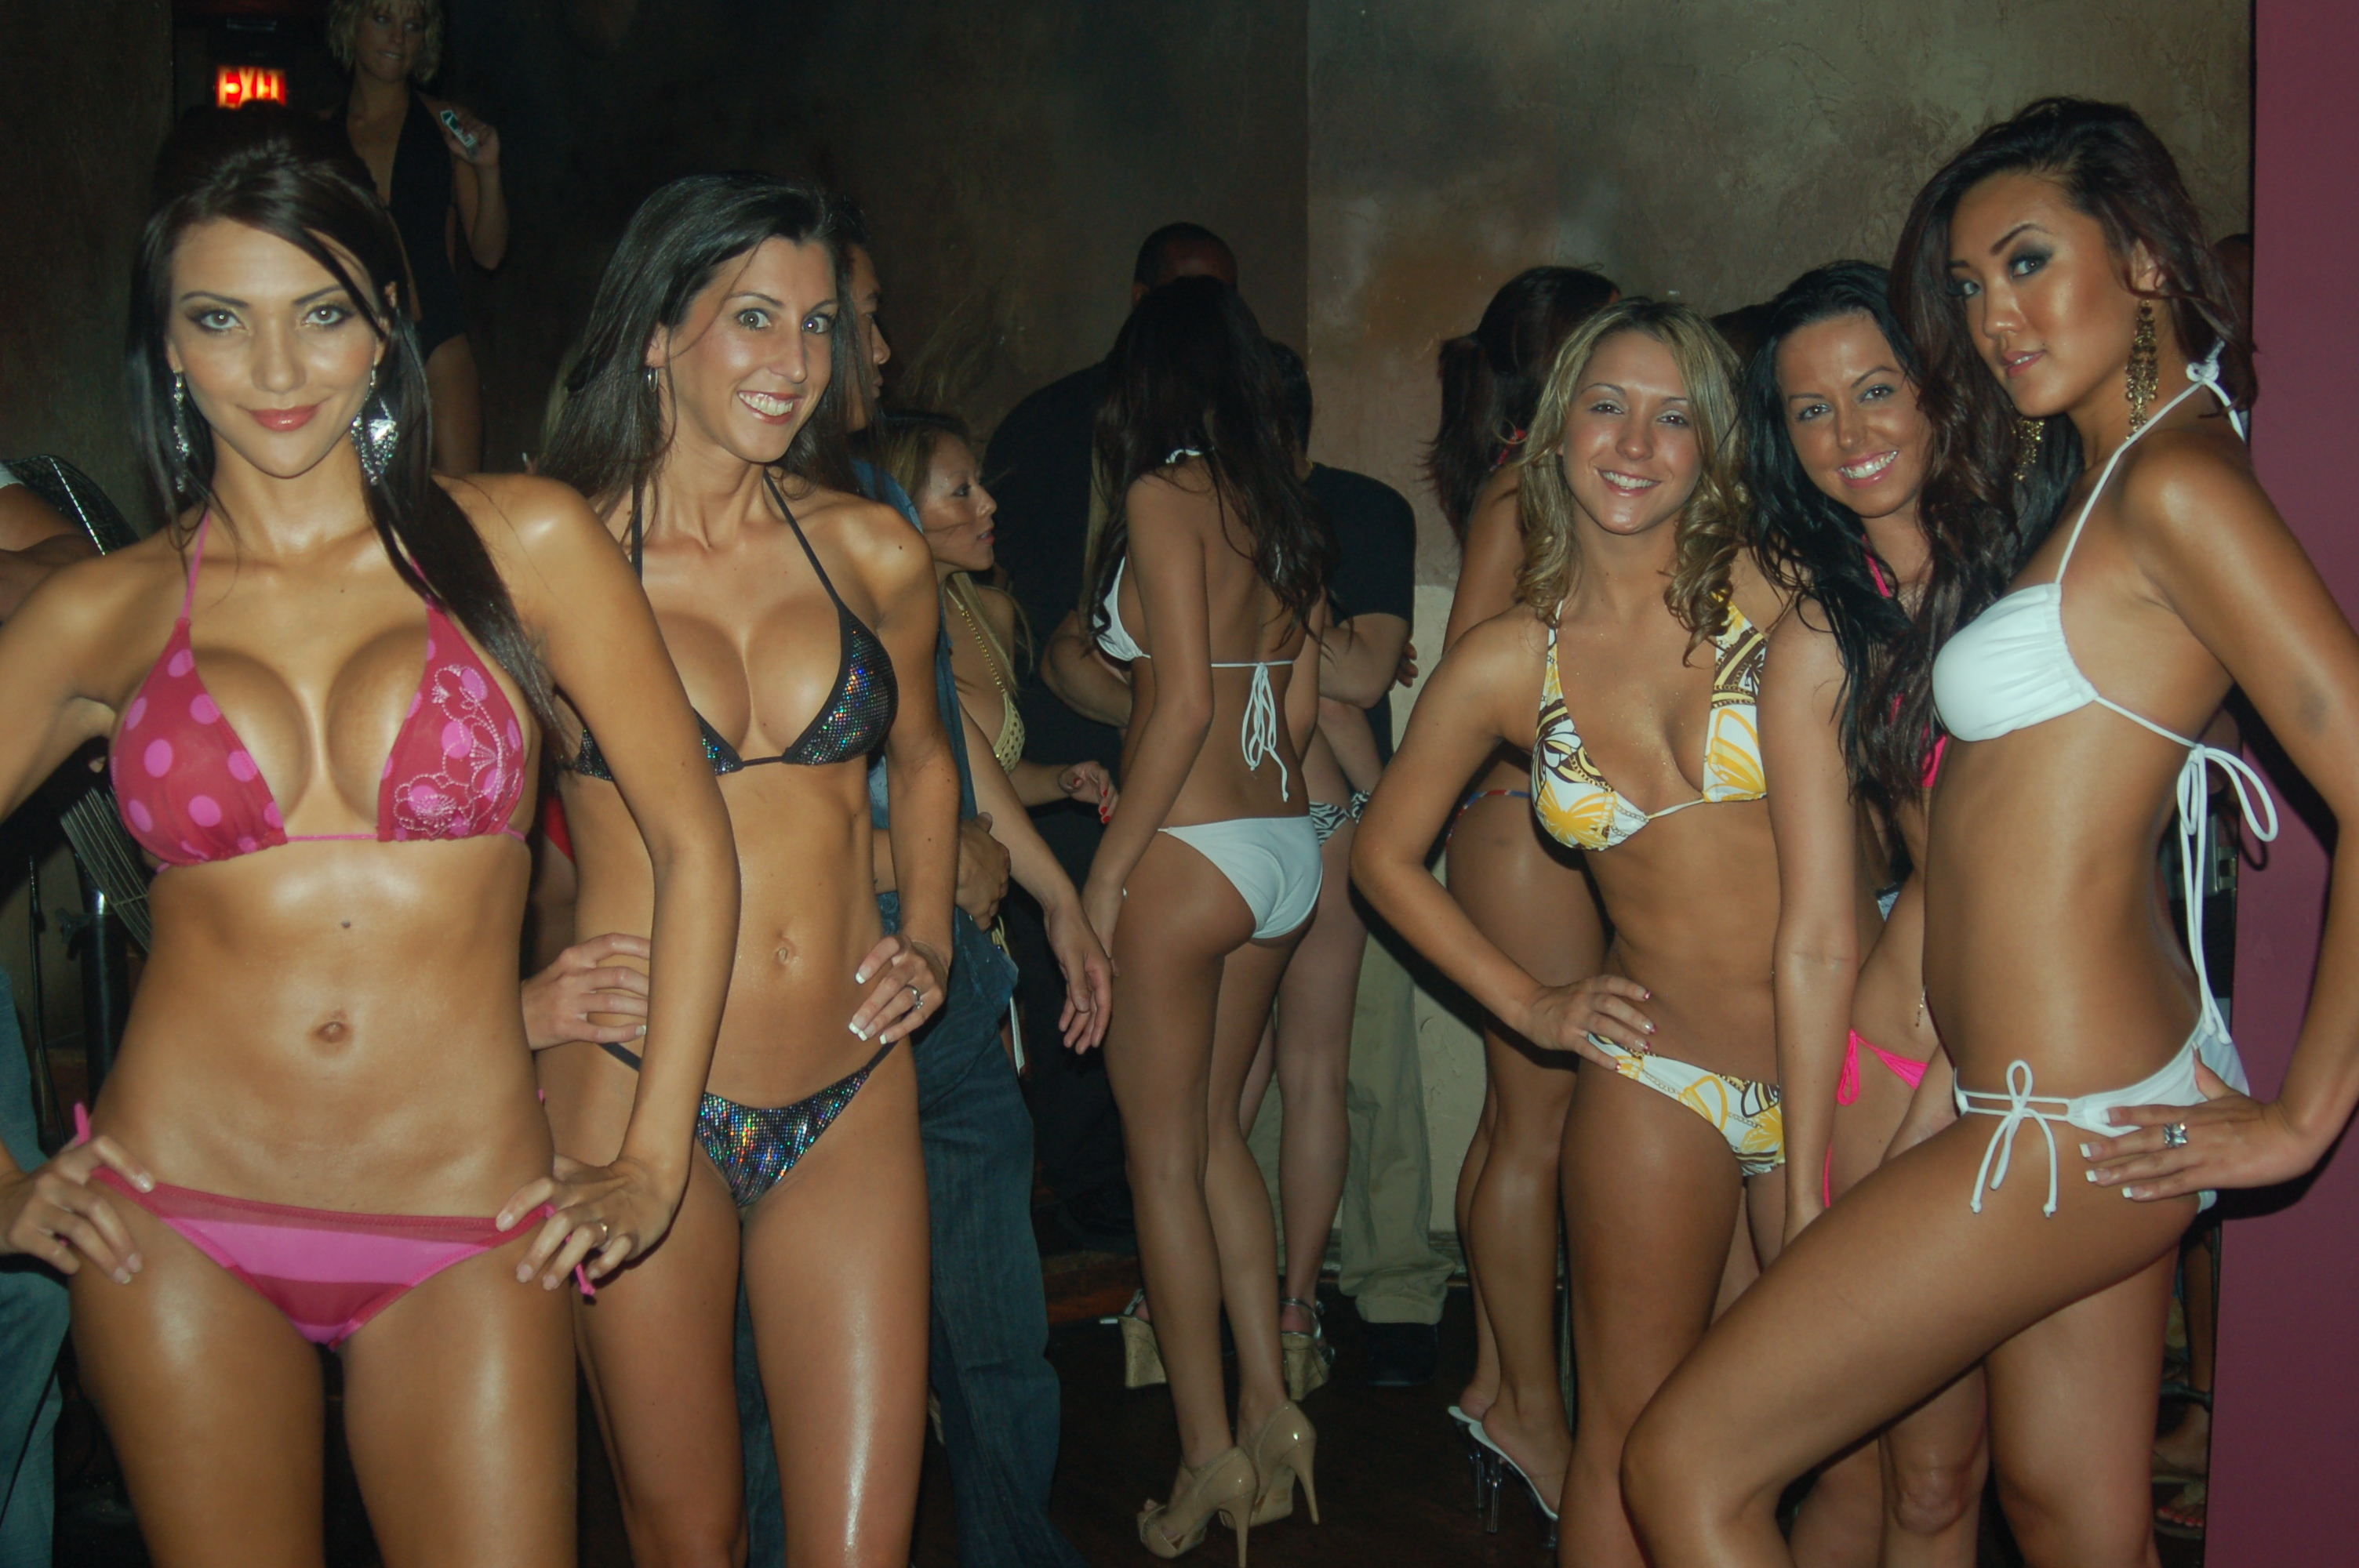 File:Bridges Bikini Contest 54.jpg